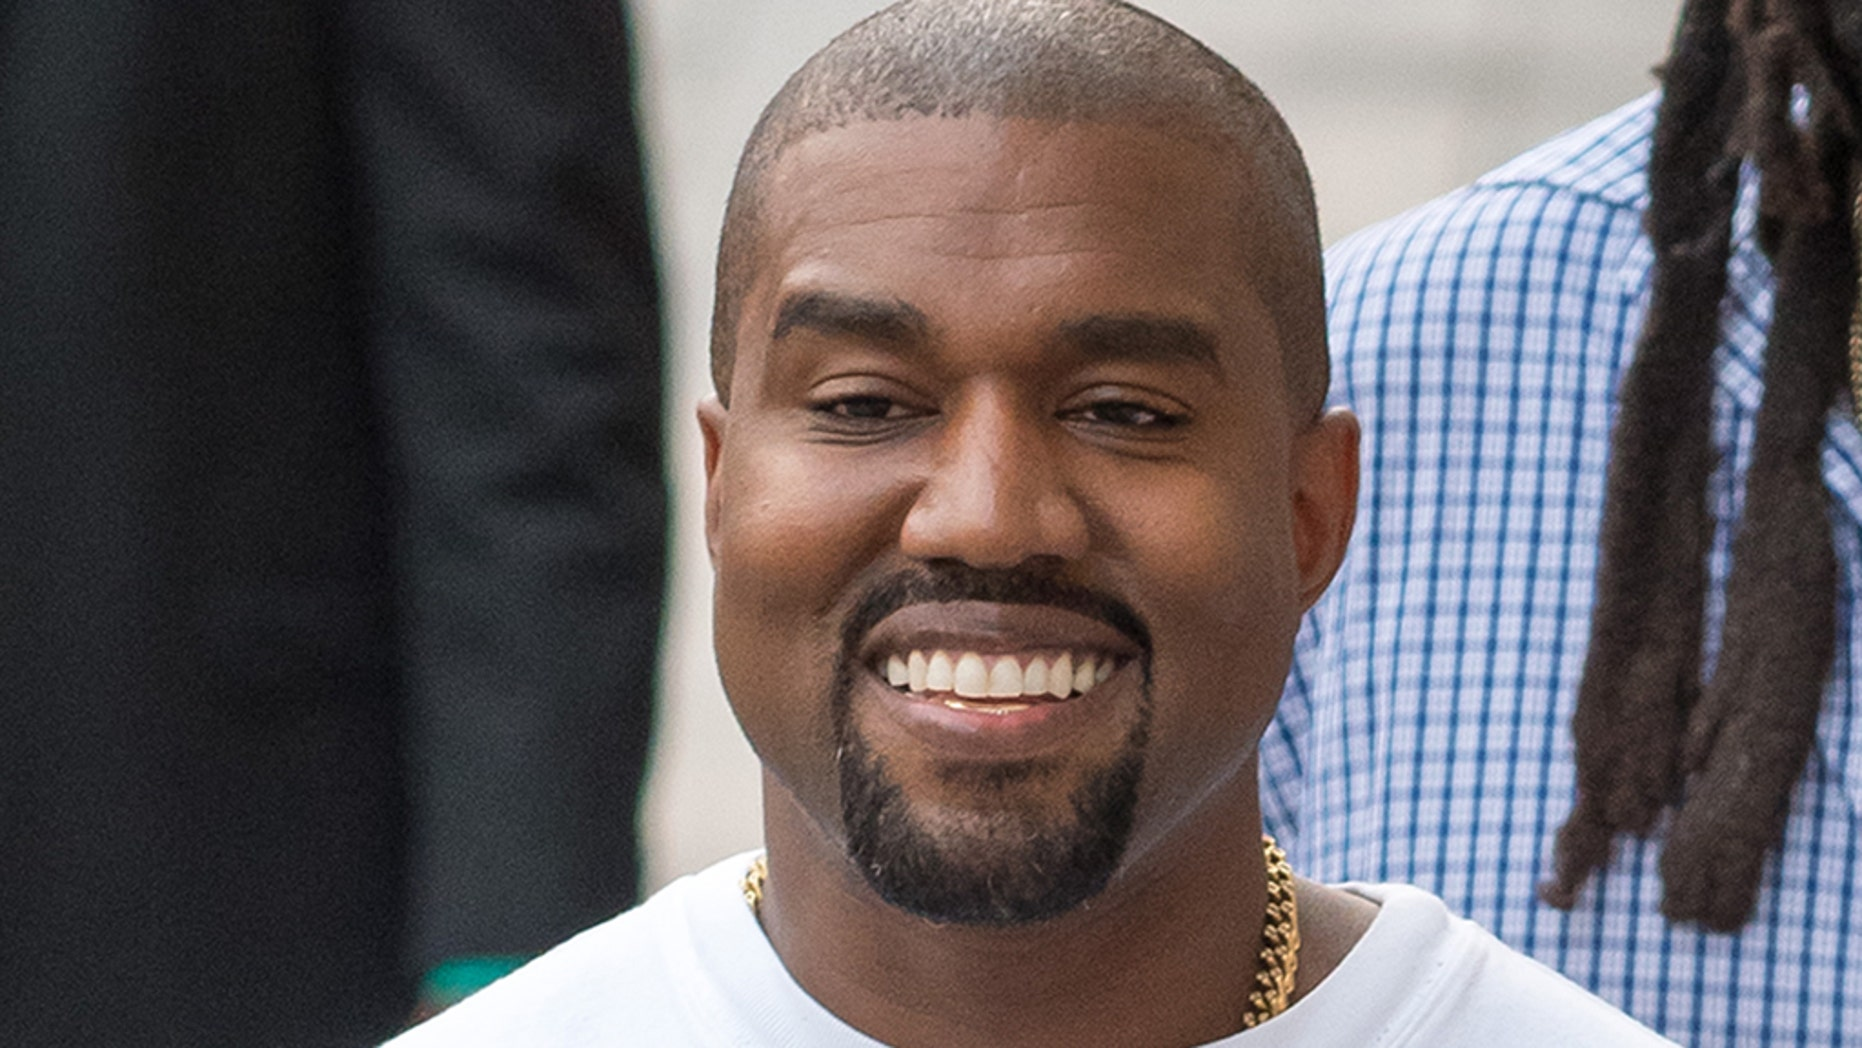 """Kanye West on Wednesday said he was """"sorry"""" about a controversial comment he made about slavery several months ago during an interview at TMZ, in which he said slavery """"sounds like a choice."""""""